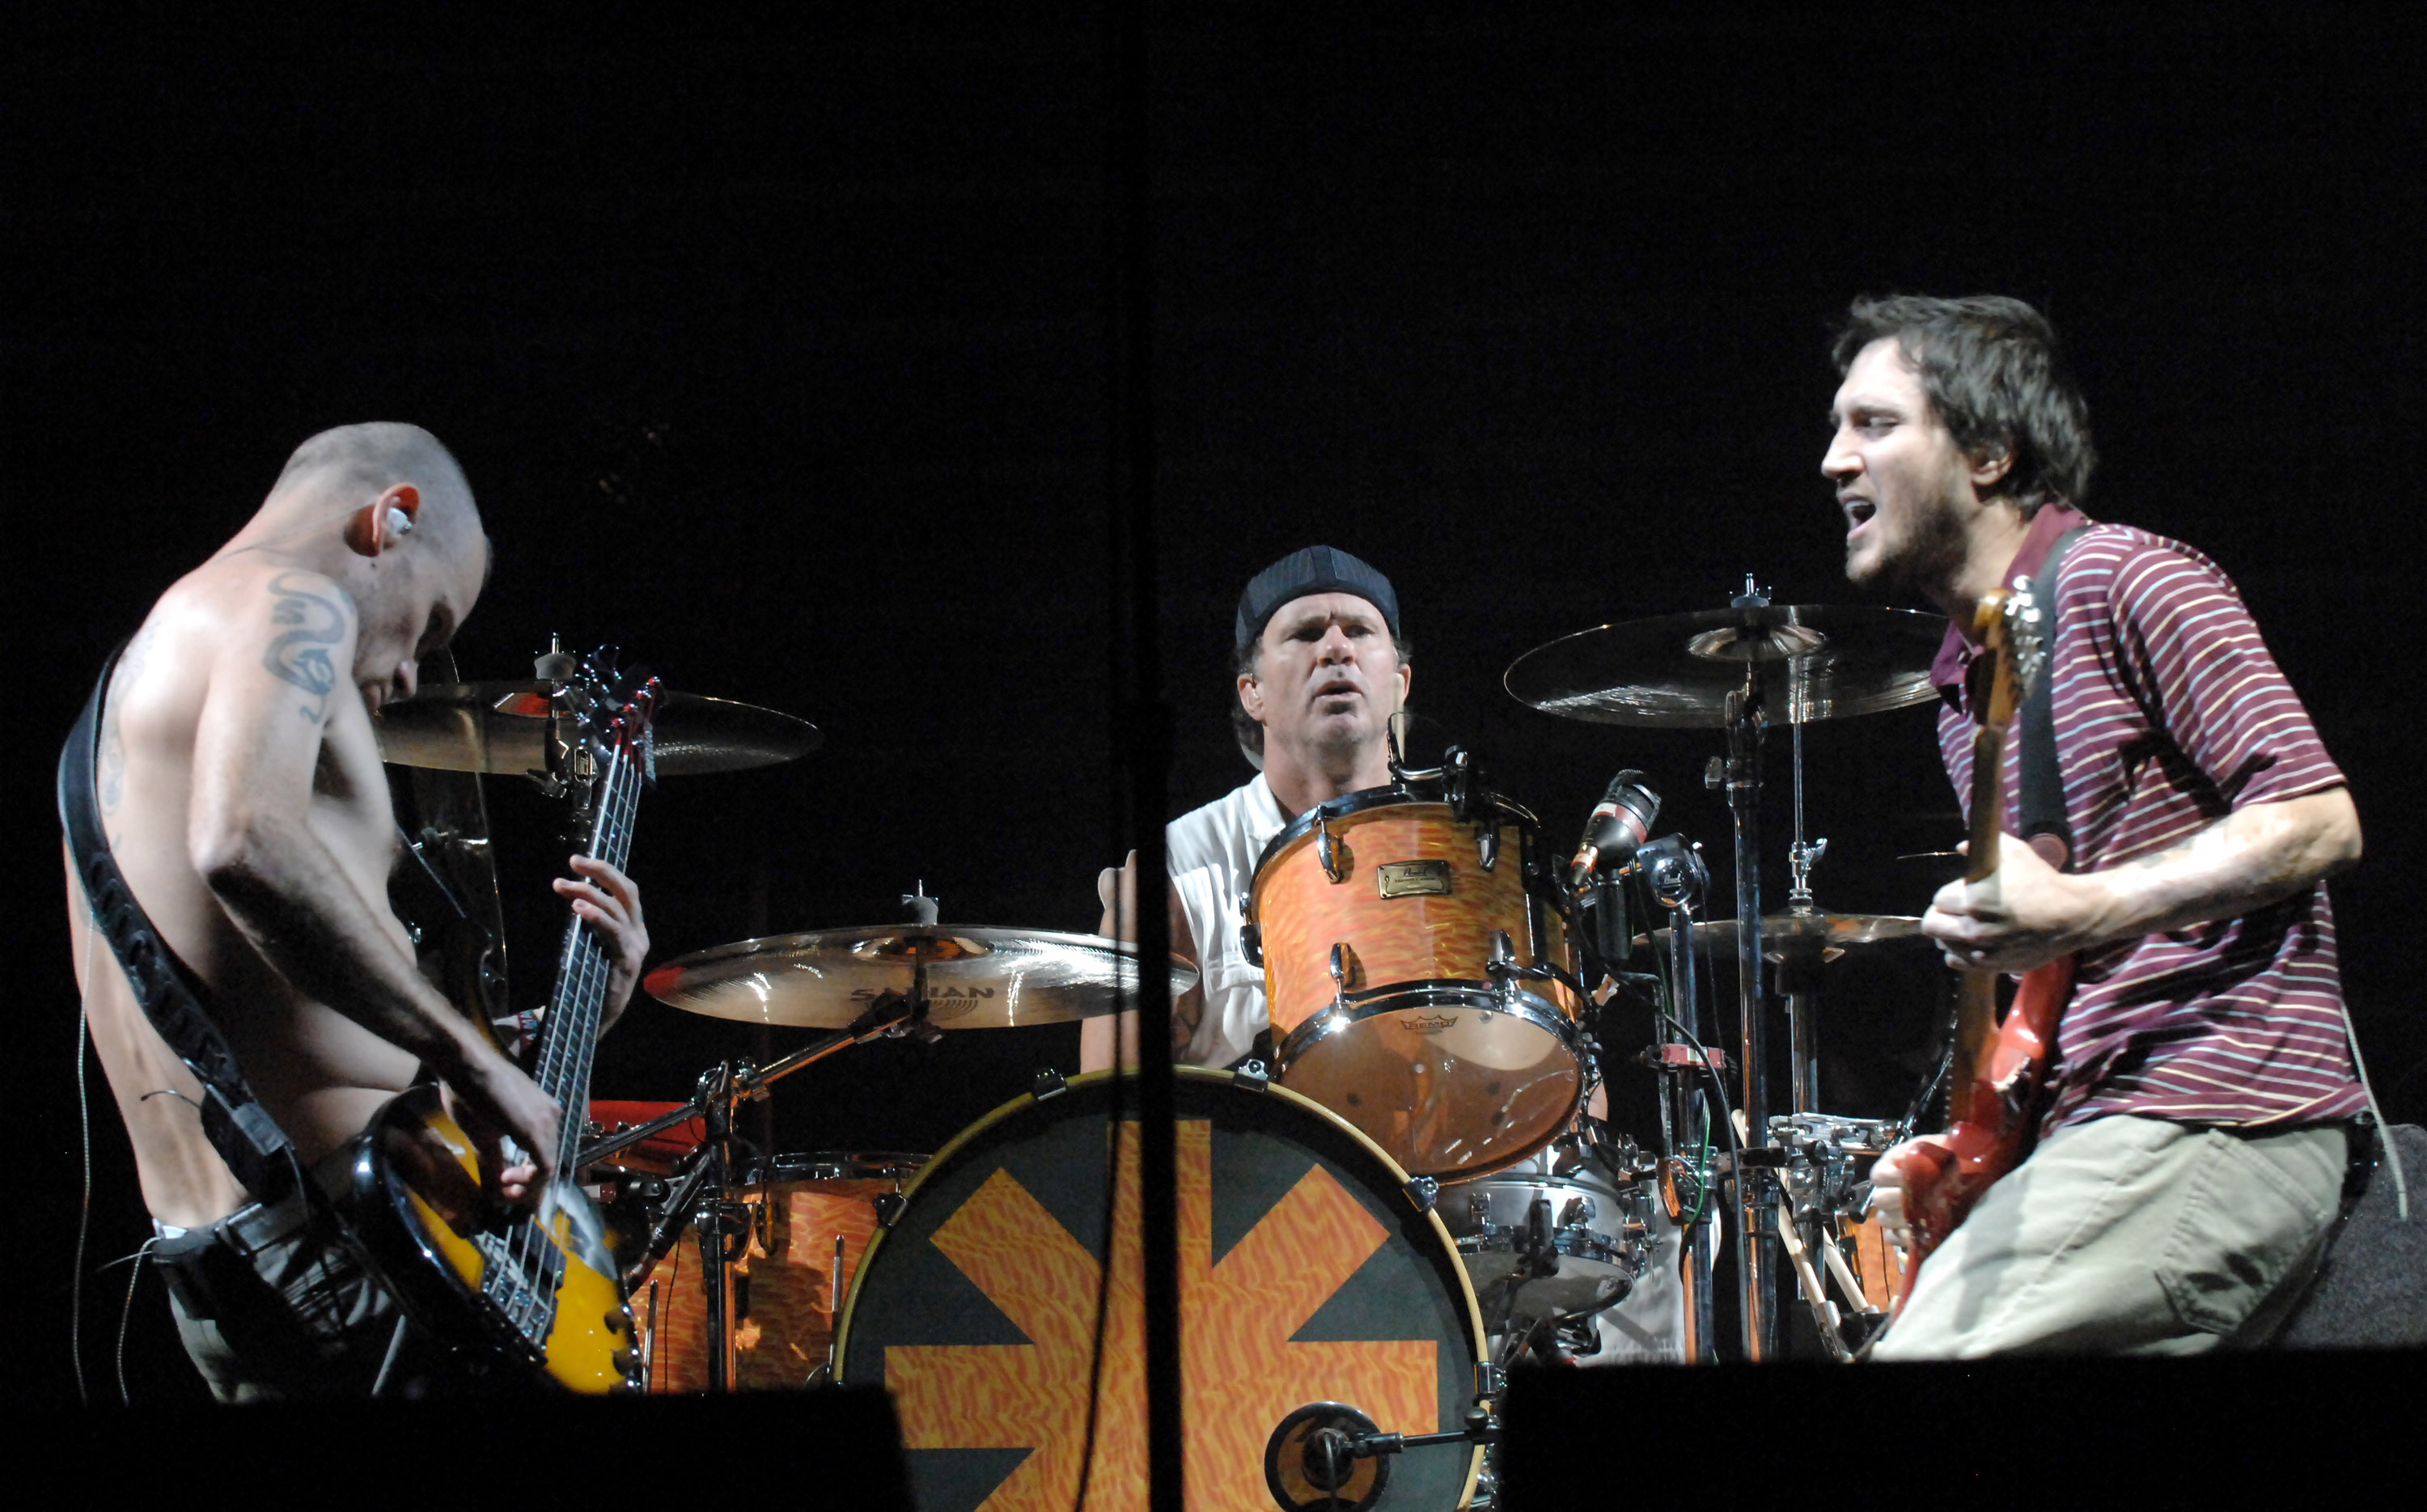 Red Hot Chili Peppers live, 2007